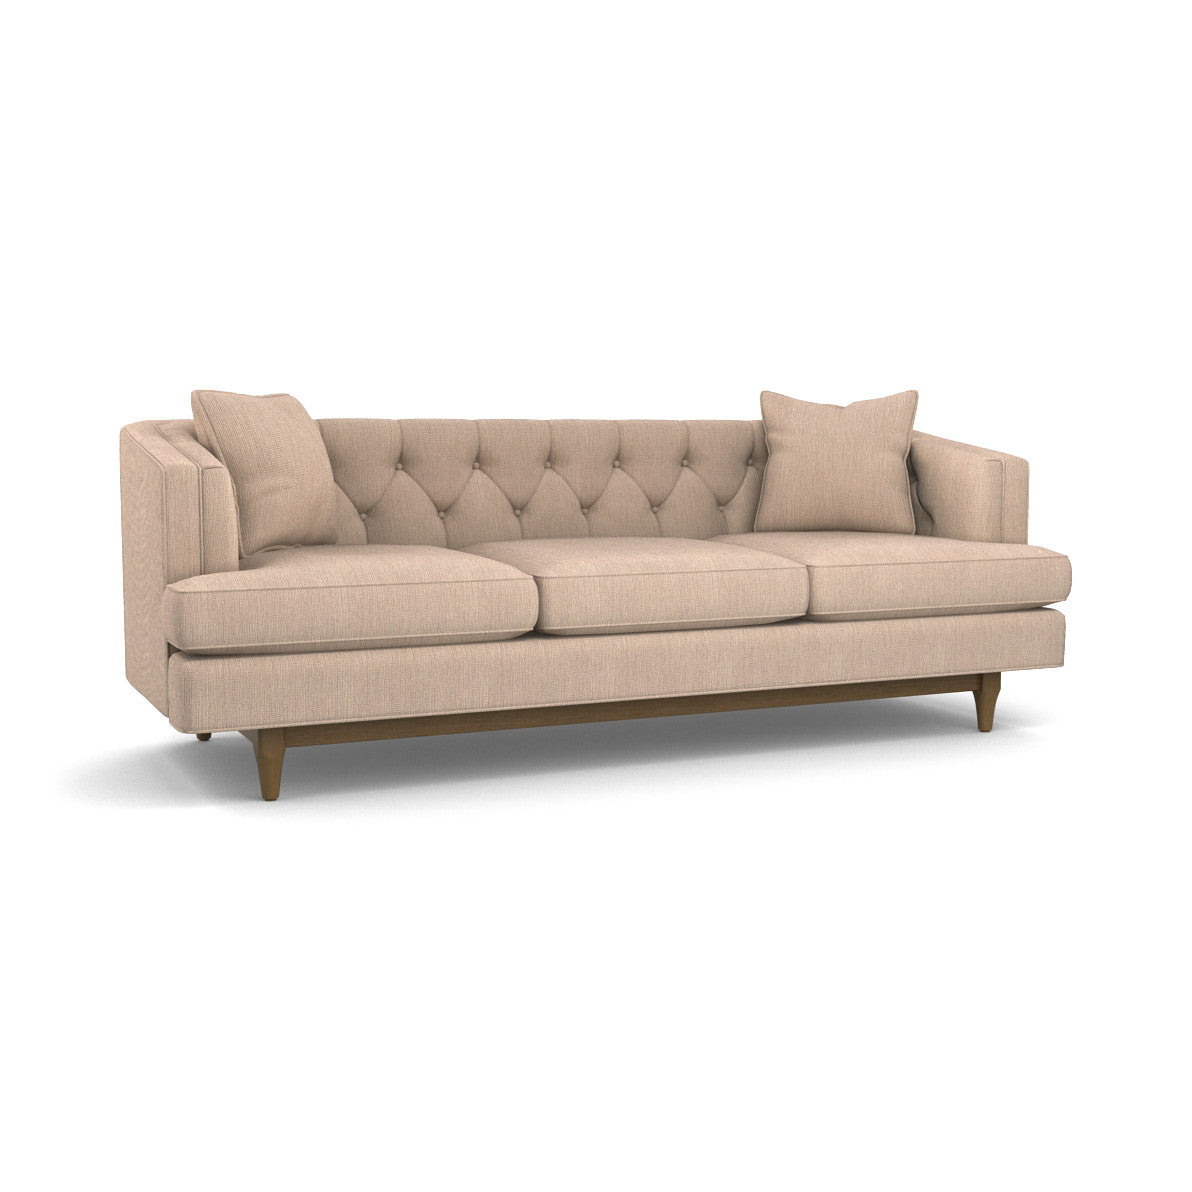 CHESTER 3-SEAT SOFA on astralriles.com